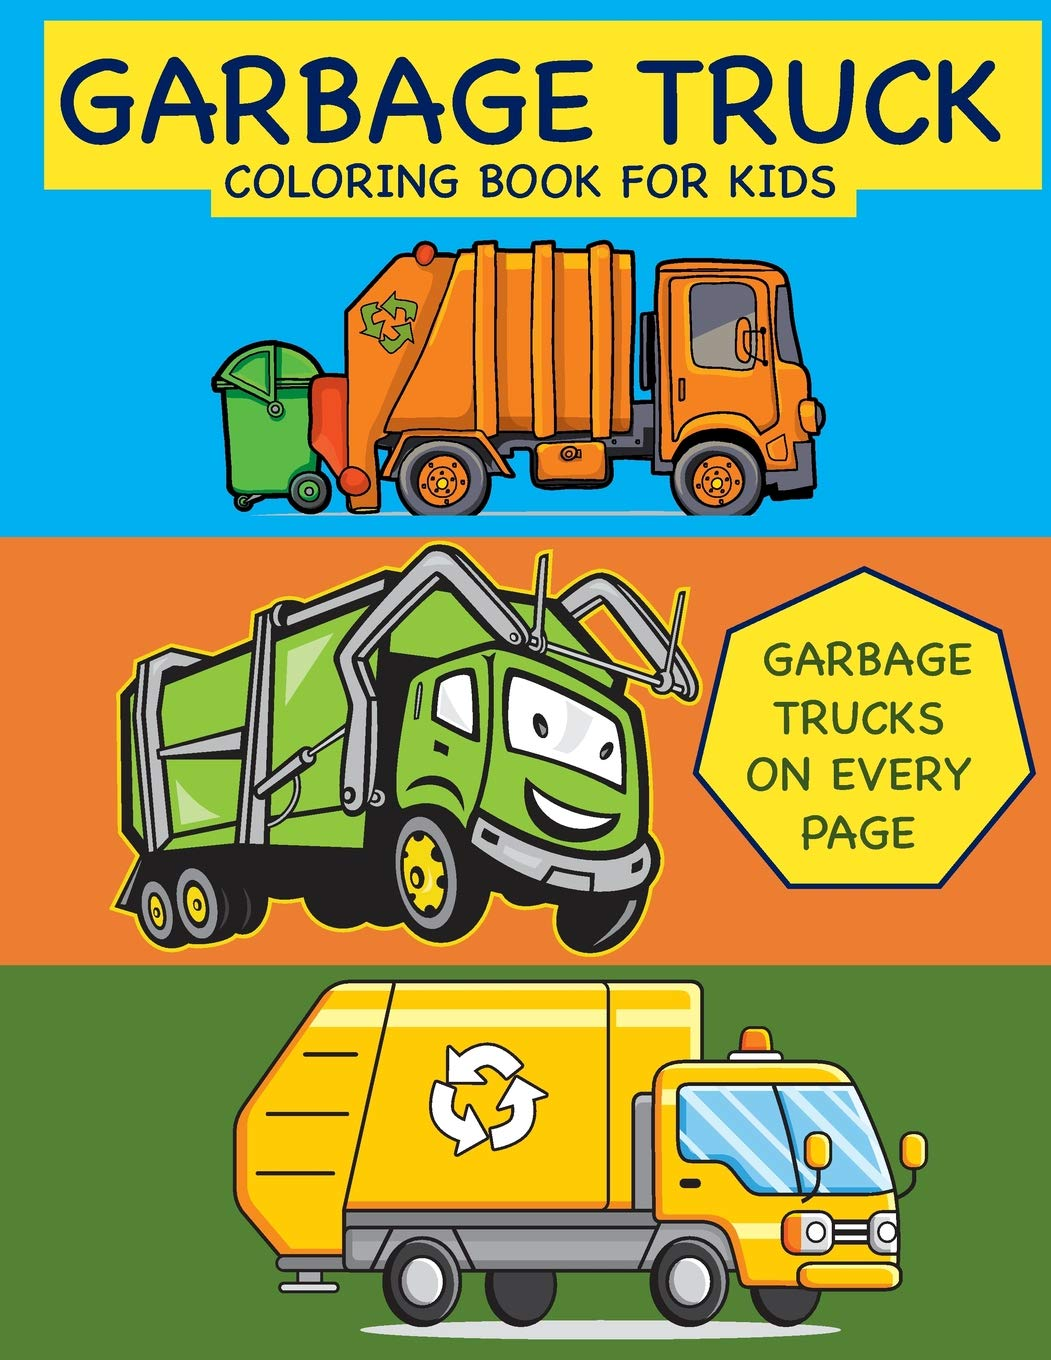 - Amazon.com: Garbage Truck Coloring Book For Kids Garbage Trucks On